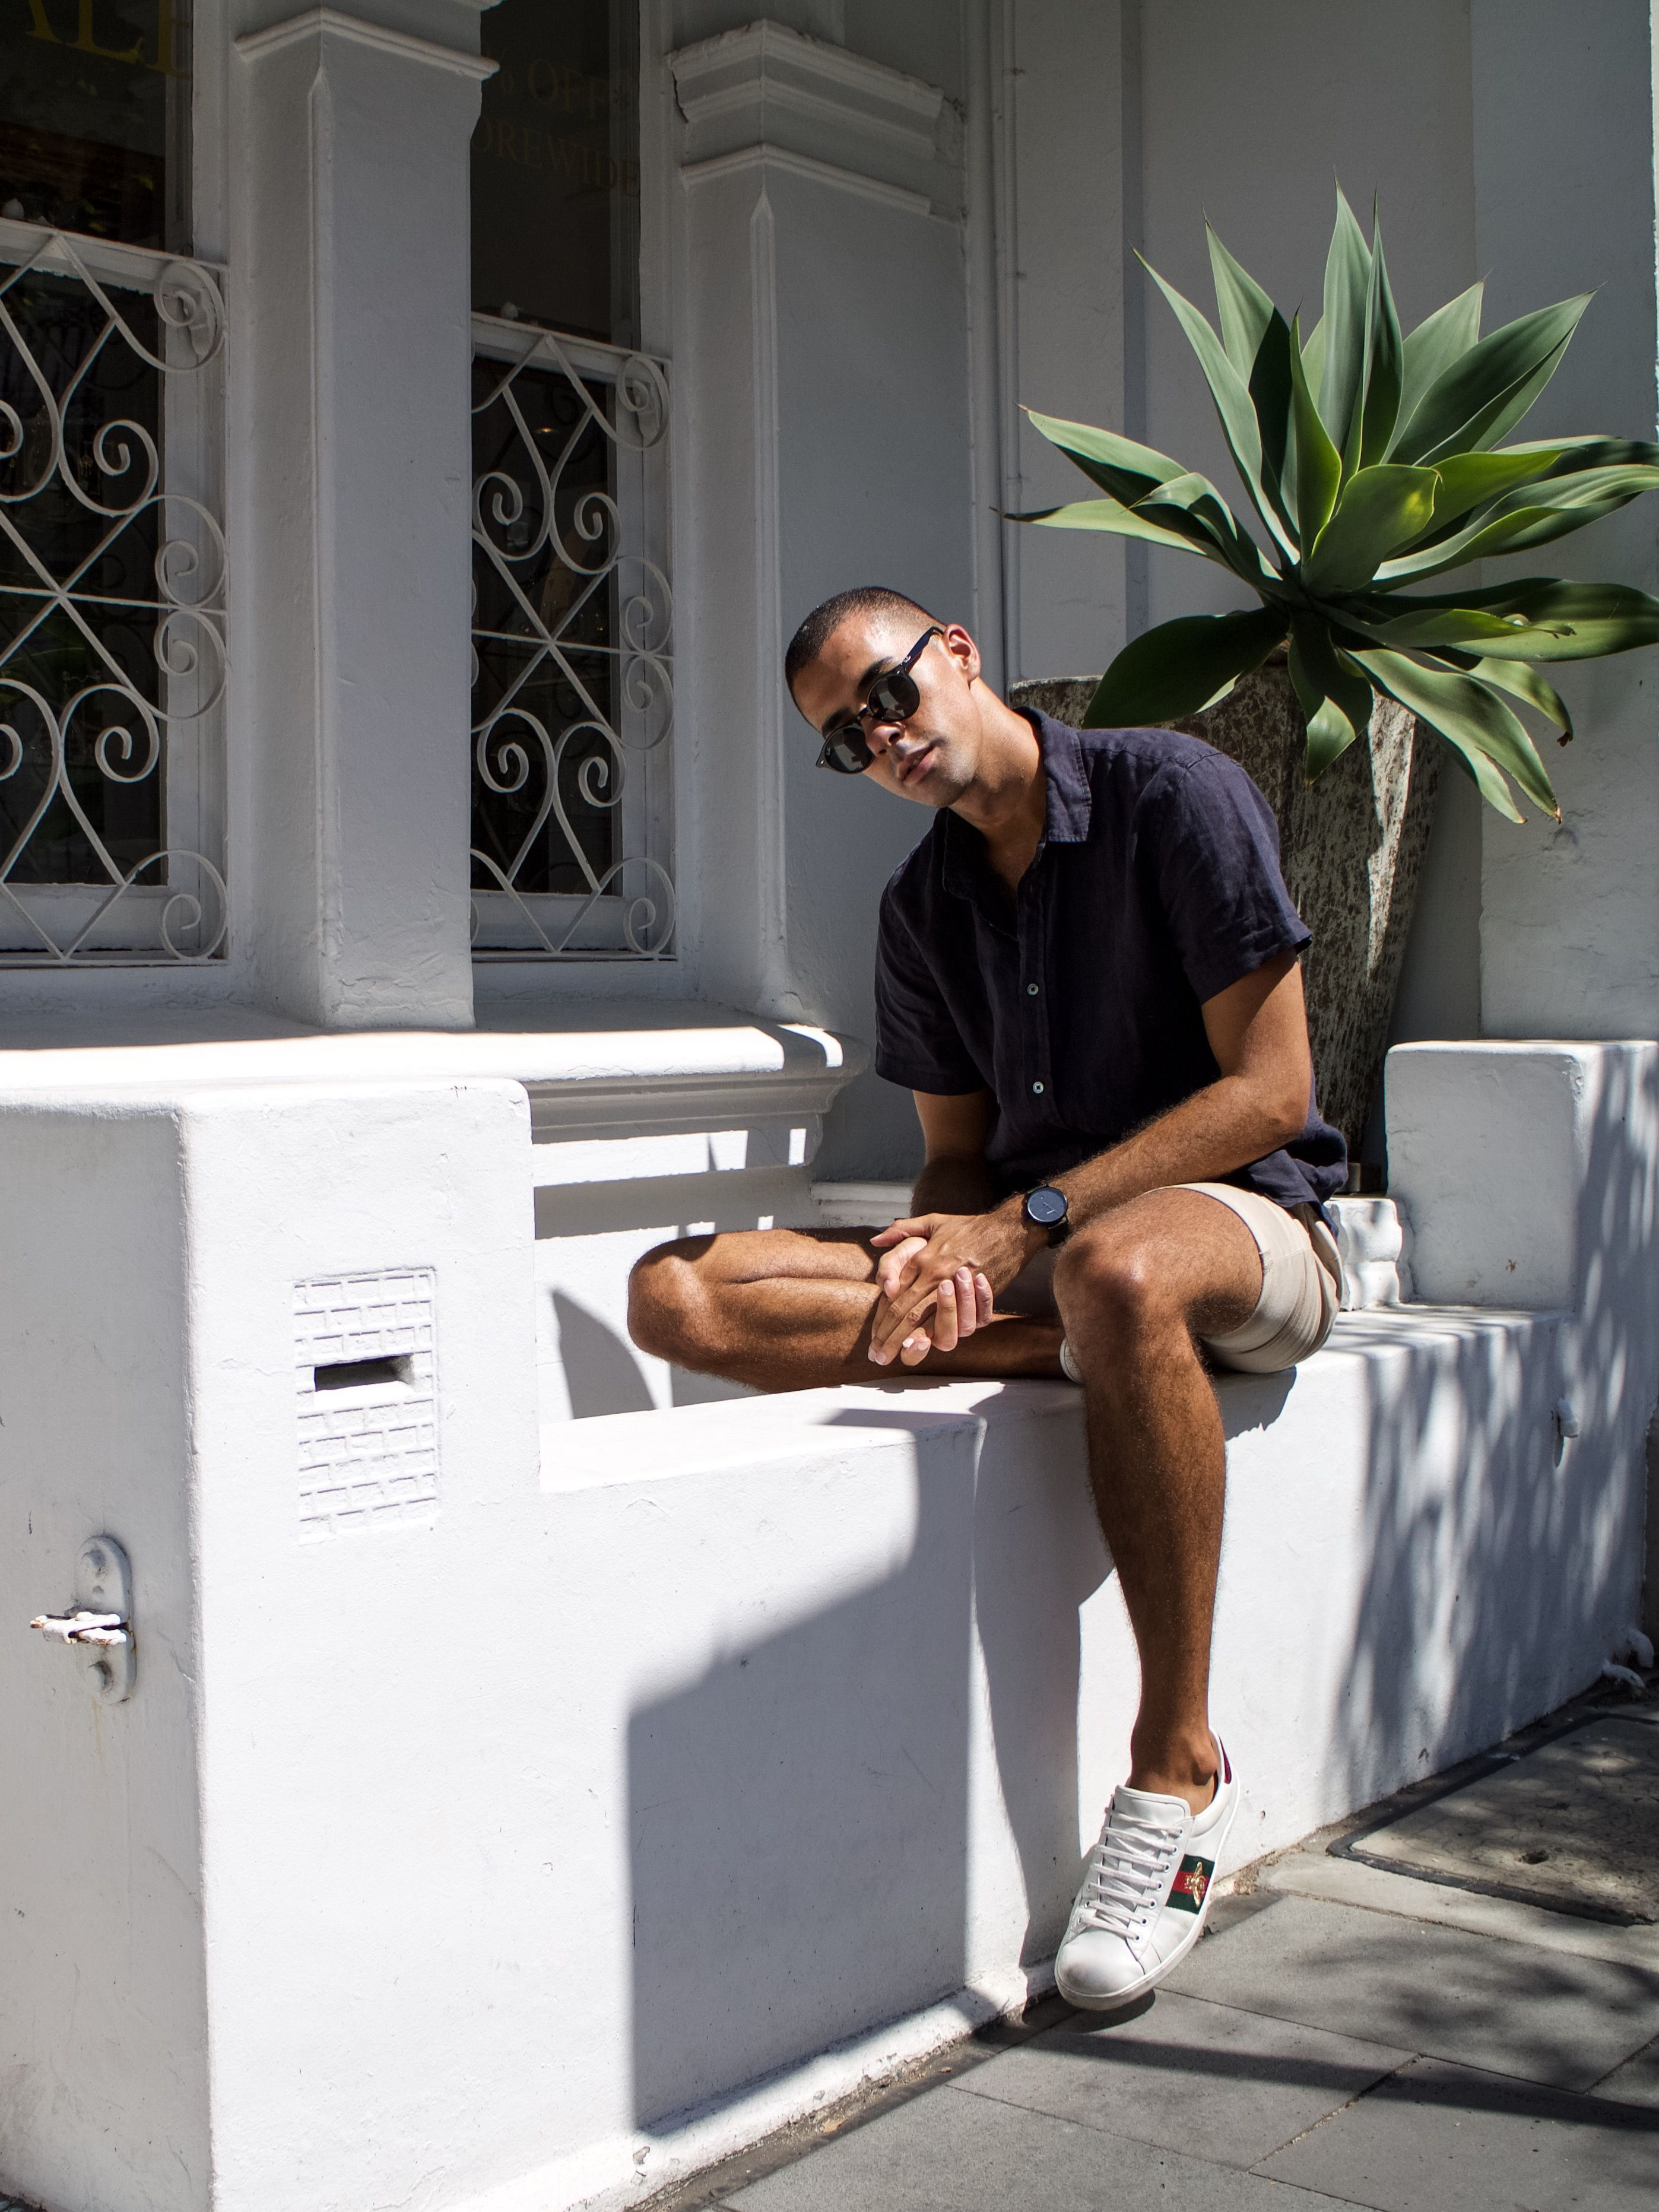 0ae924284 Mens Fashion Style & Outfit inspo by Blogger MR TURNER. Assembly Label  linen shirt in Navy Blue and Topman fitted chino shorts. Gucci Ace Sneaker.